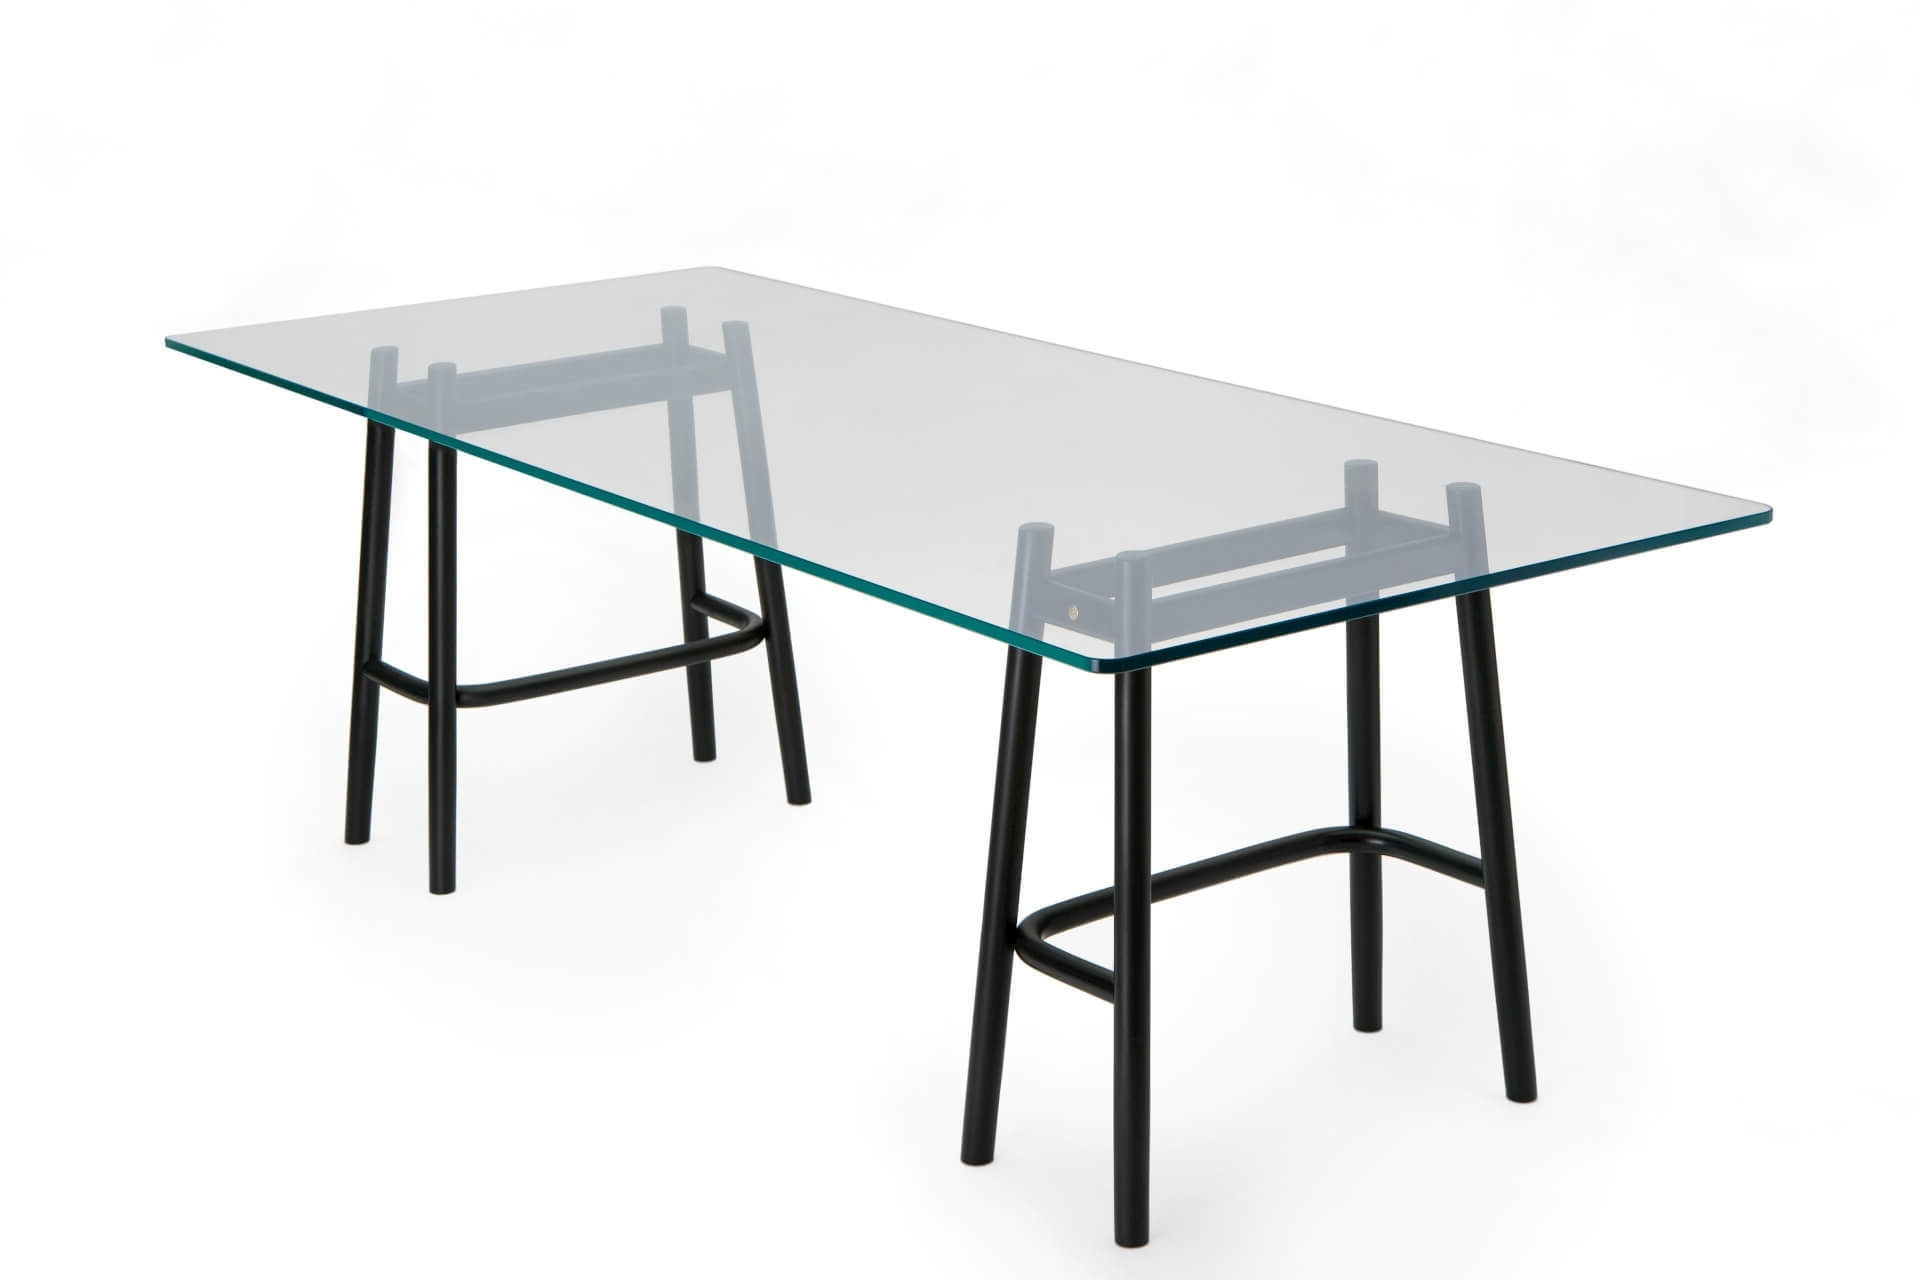 Vienna Dining Tables intended for Most Recent Single Curve Dining Table – Gebrüder Thonet Vienna